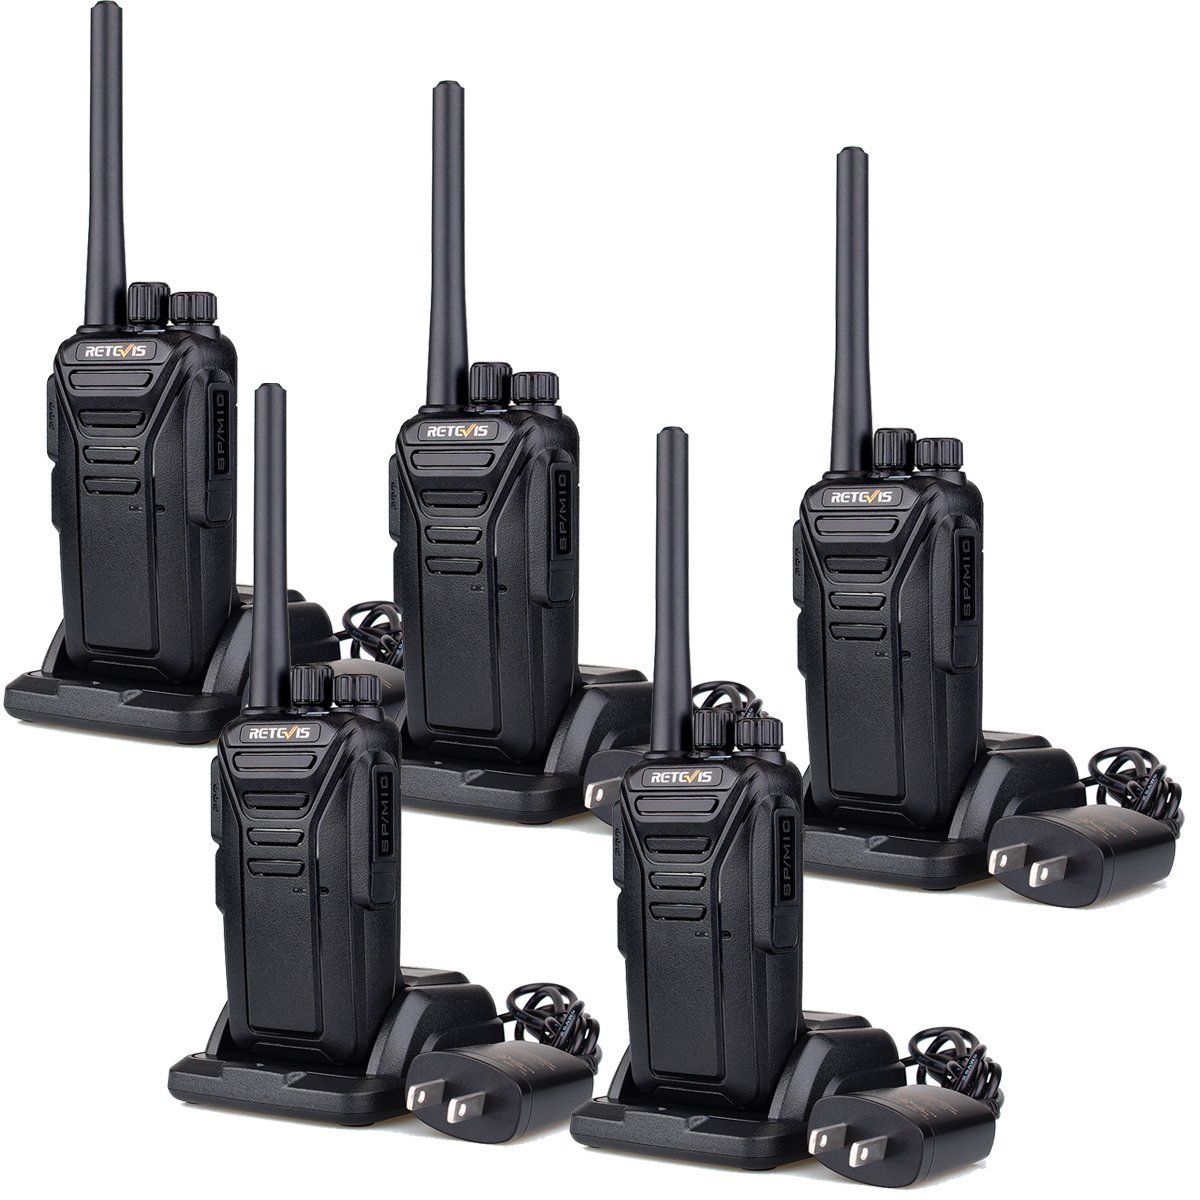 Retevis RT27 Walkie Talkies Rechargeable Long Range FRS Two Way Radio 22CH Encryption VOX 2 Way Radio (Black,5 pack) by Retevis